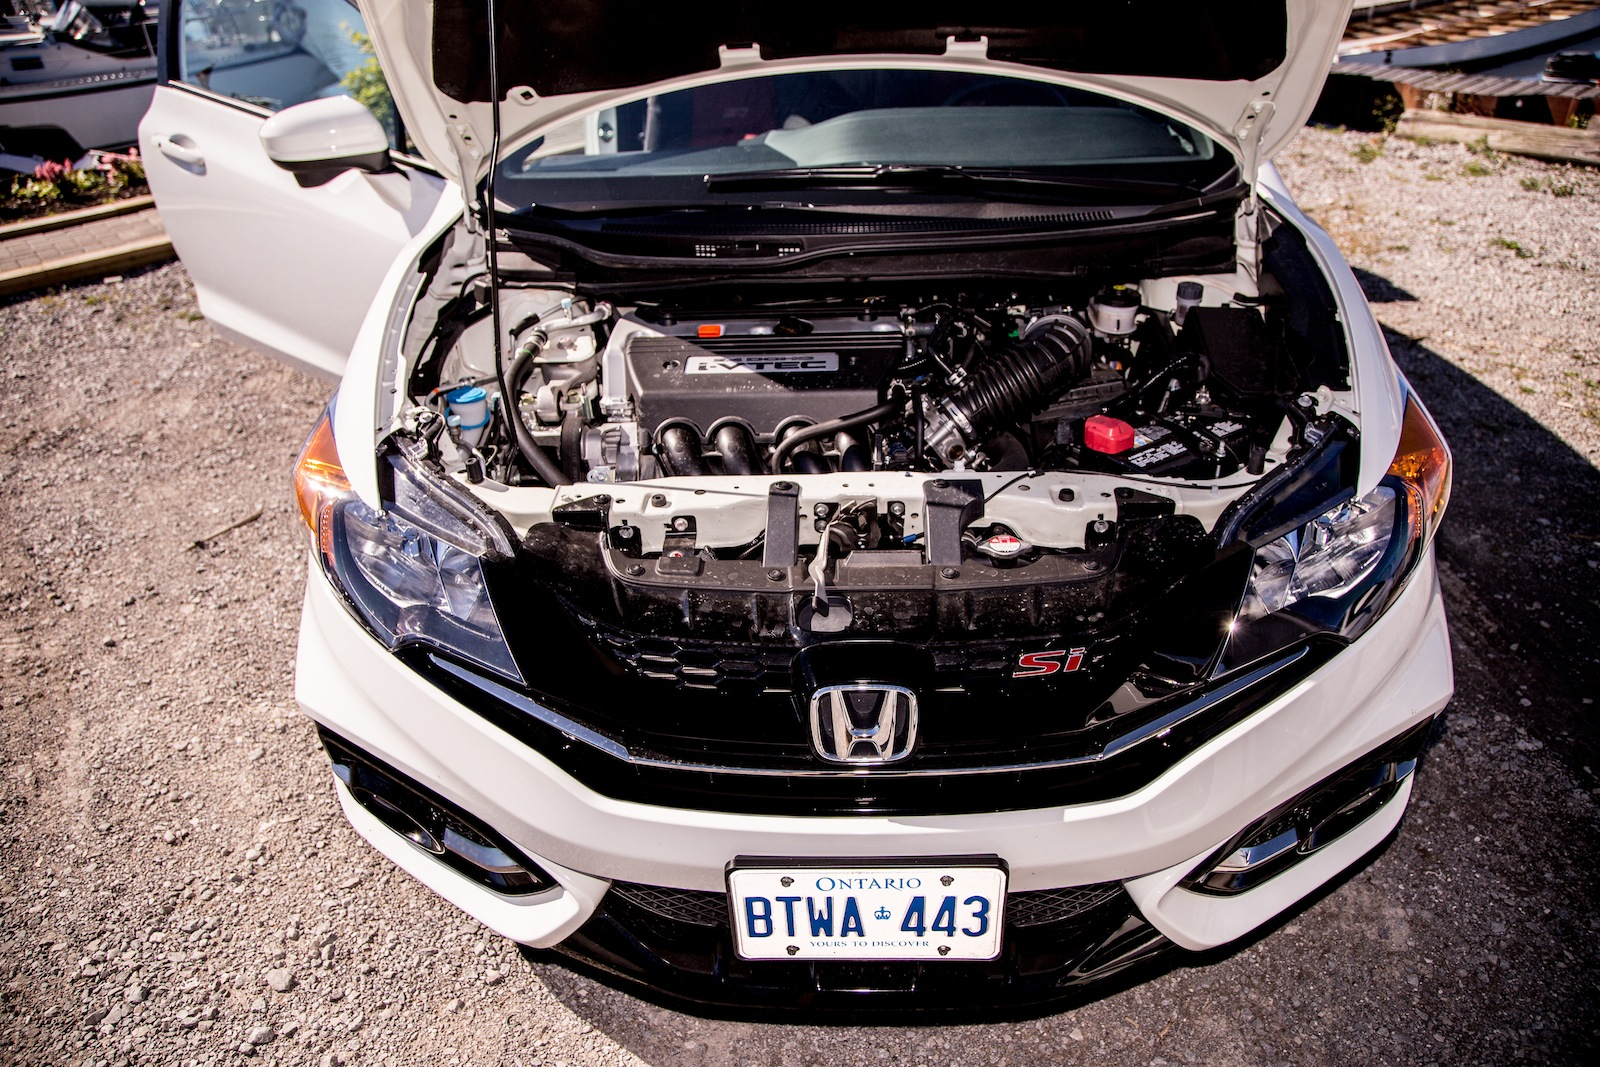 2013 honda civic engine. 2014 honda civic si coupe dohc vtec engine 2013